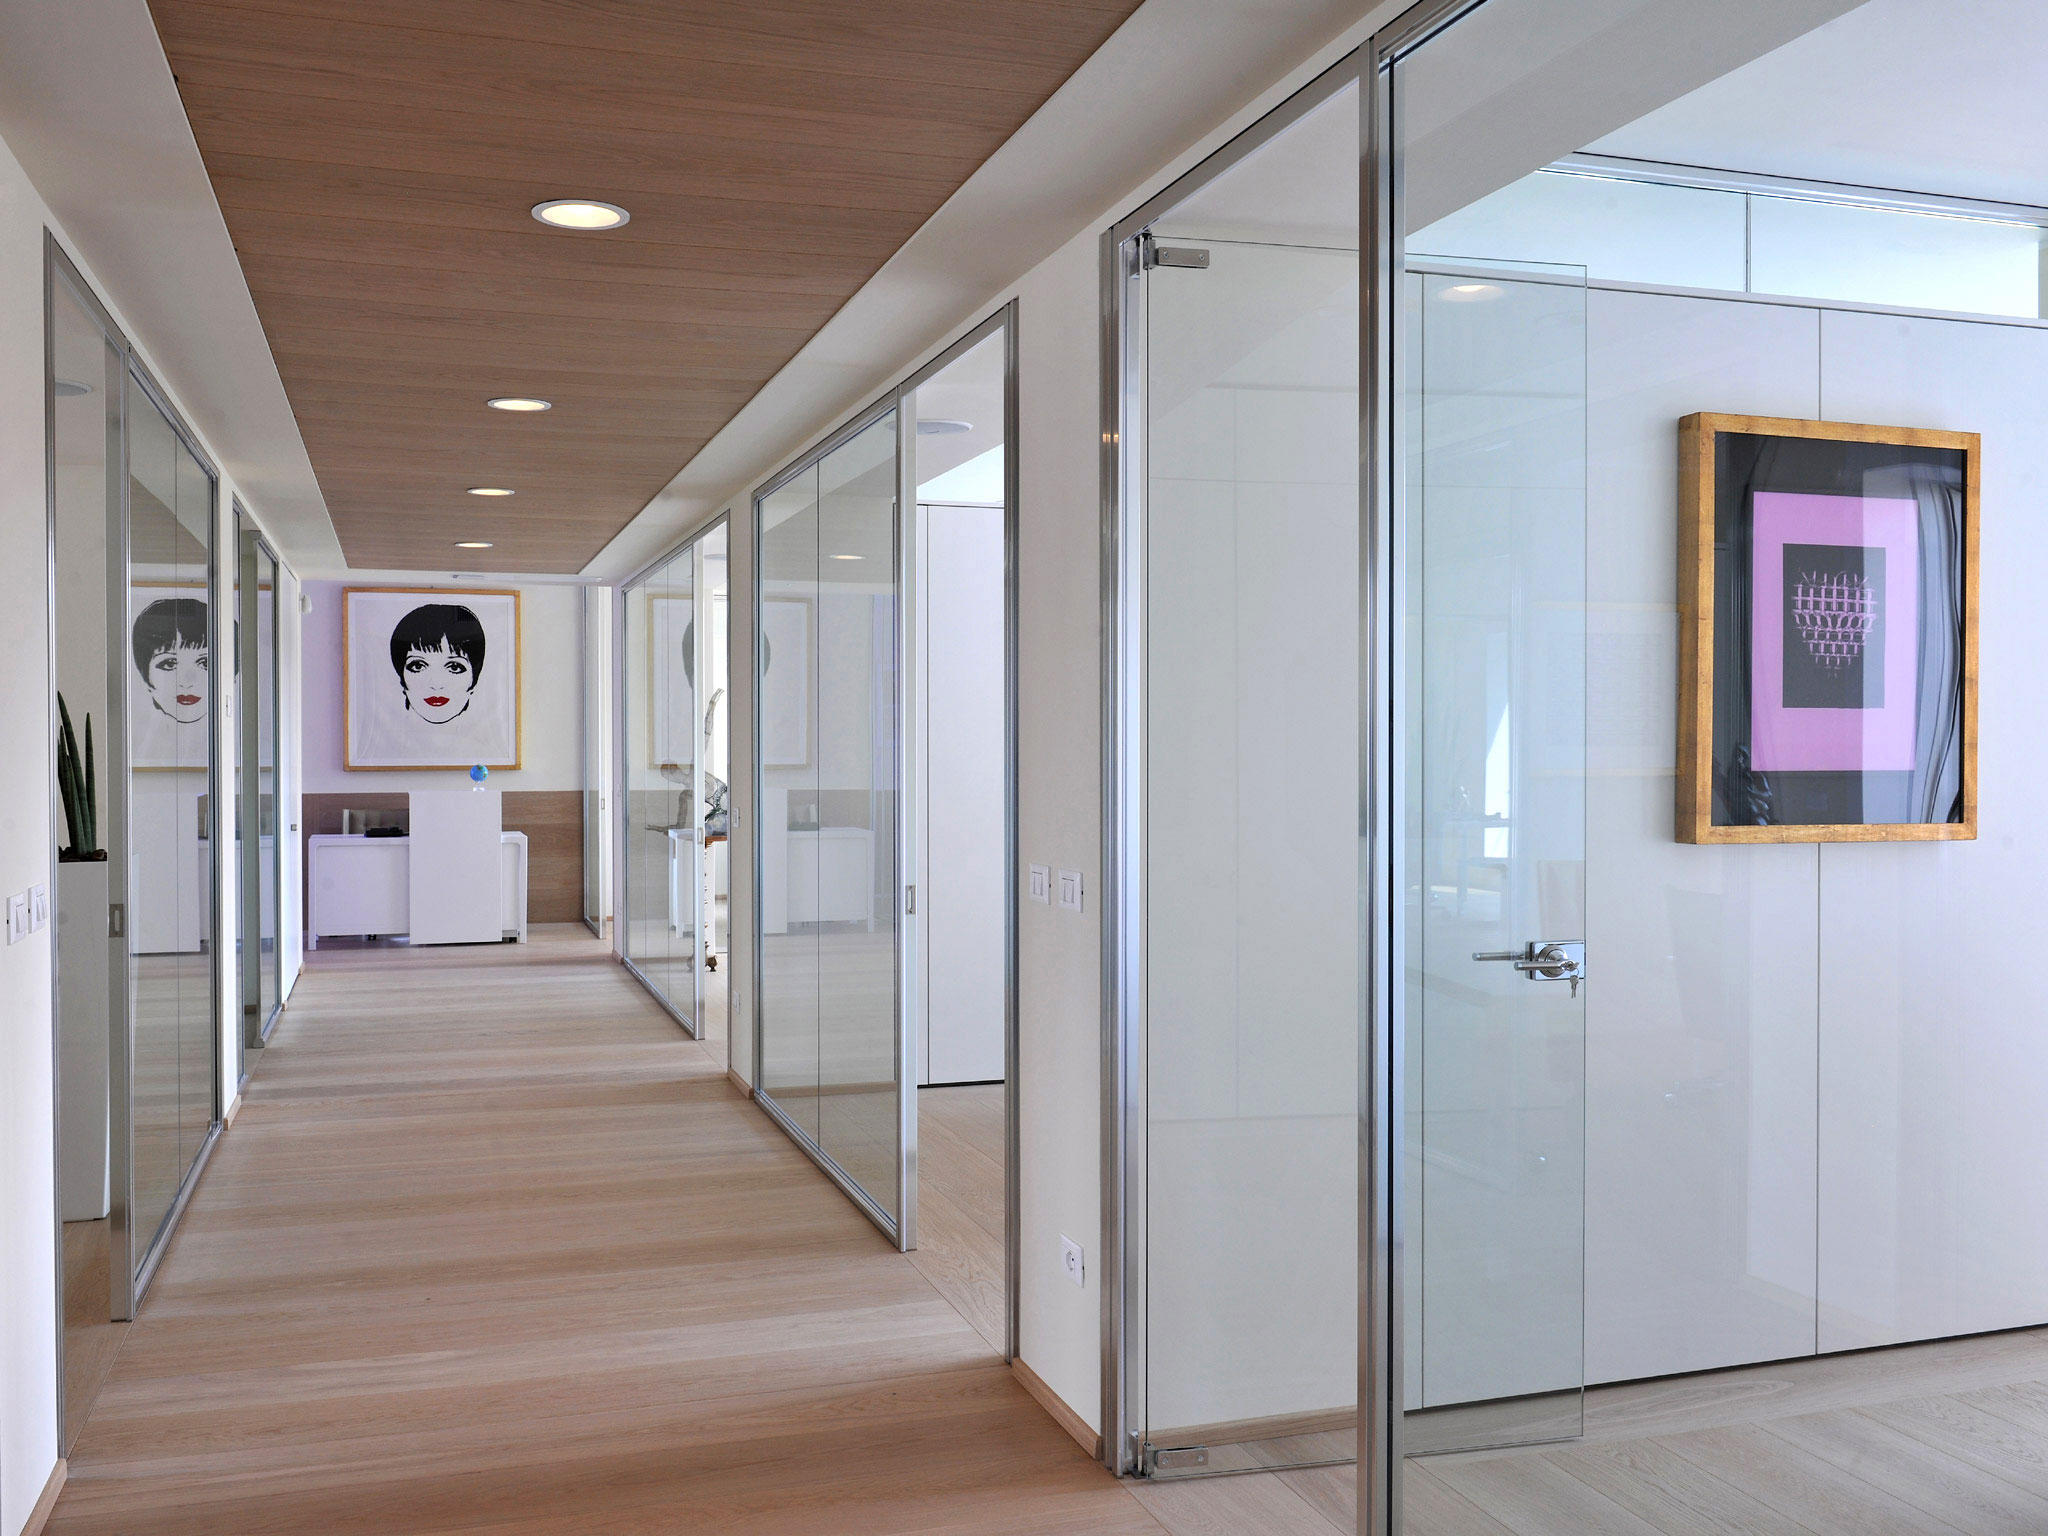 Slimbox Wall Partitions Sound Absorbing Architectural